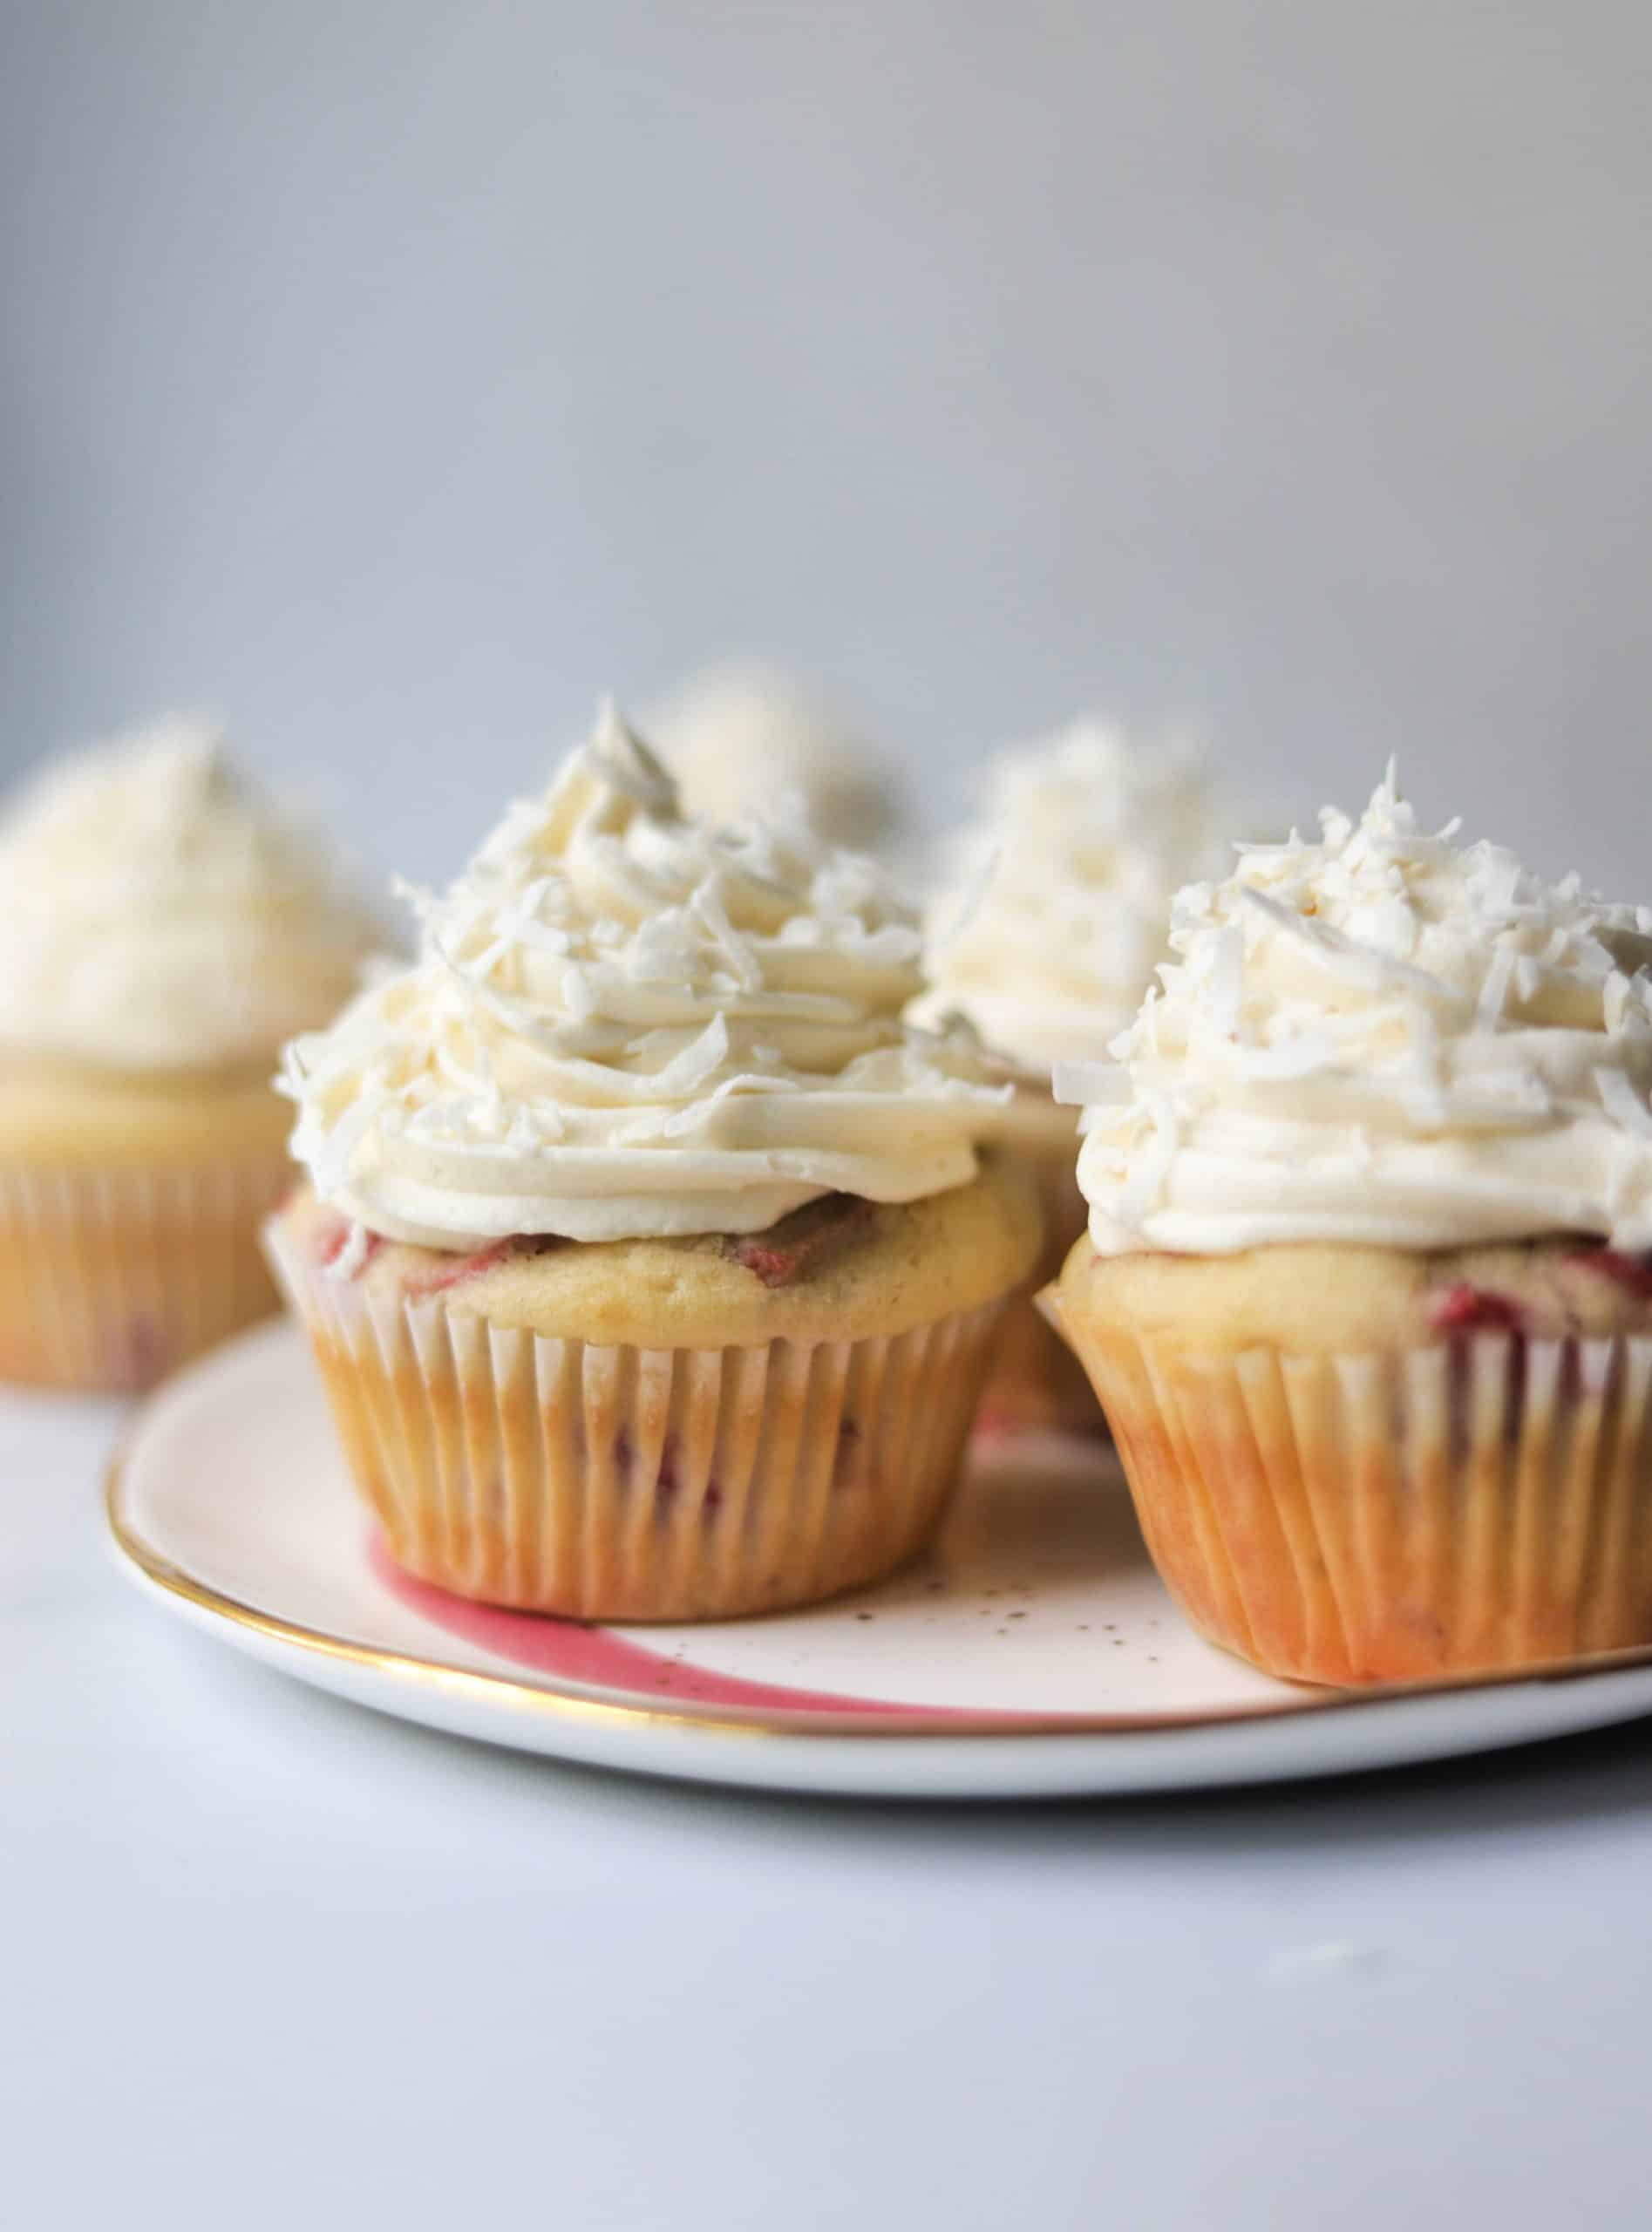 A plate filled with strawberry rhubarb cupcakes on a marble backdrop.